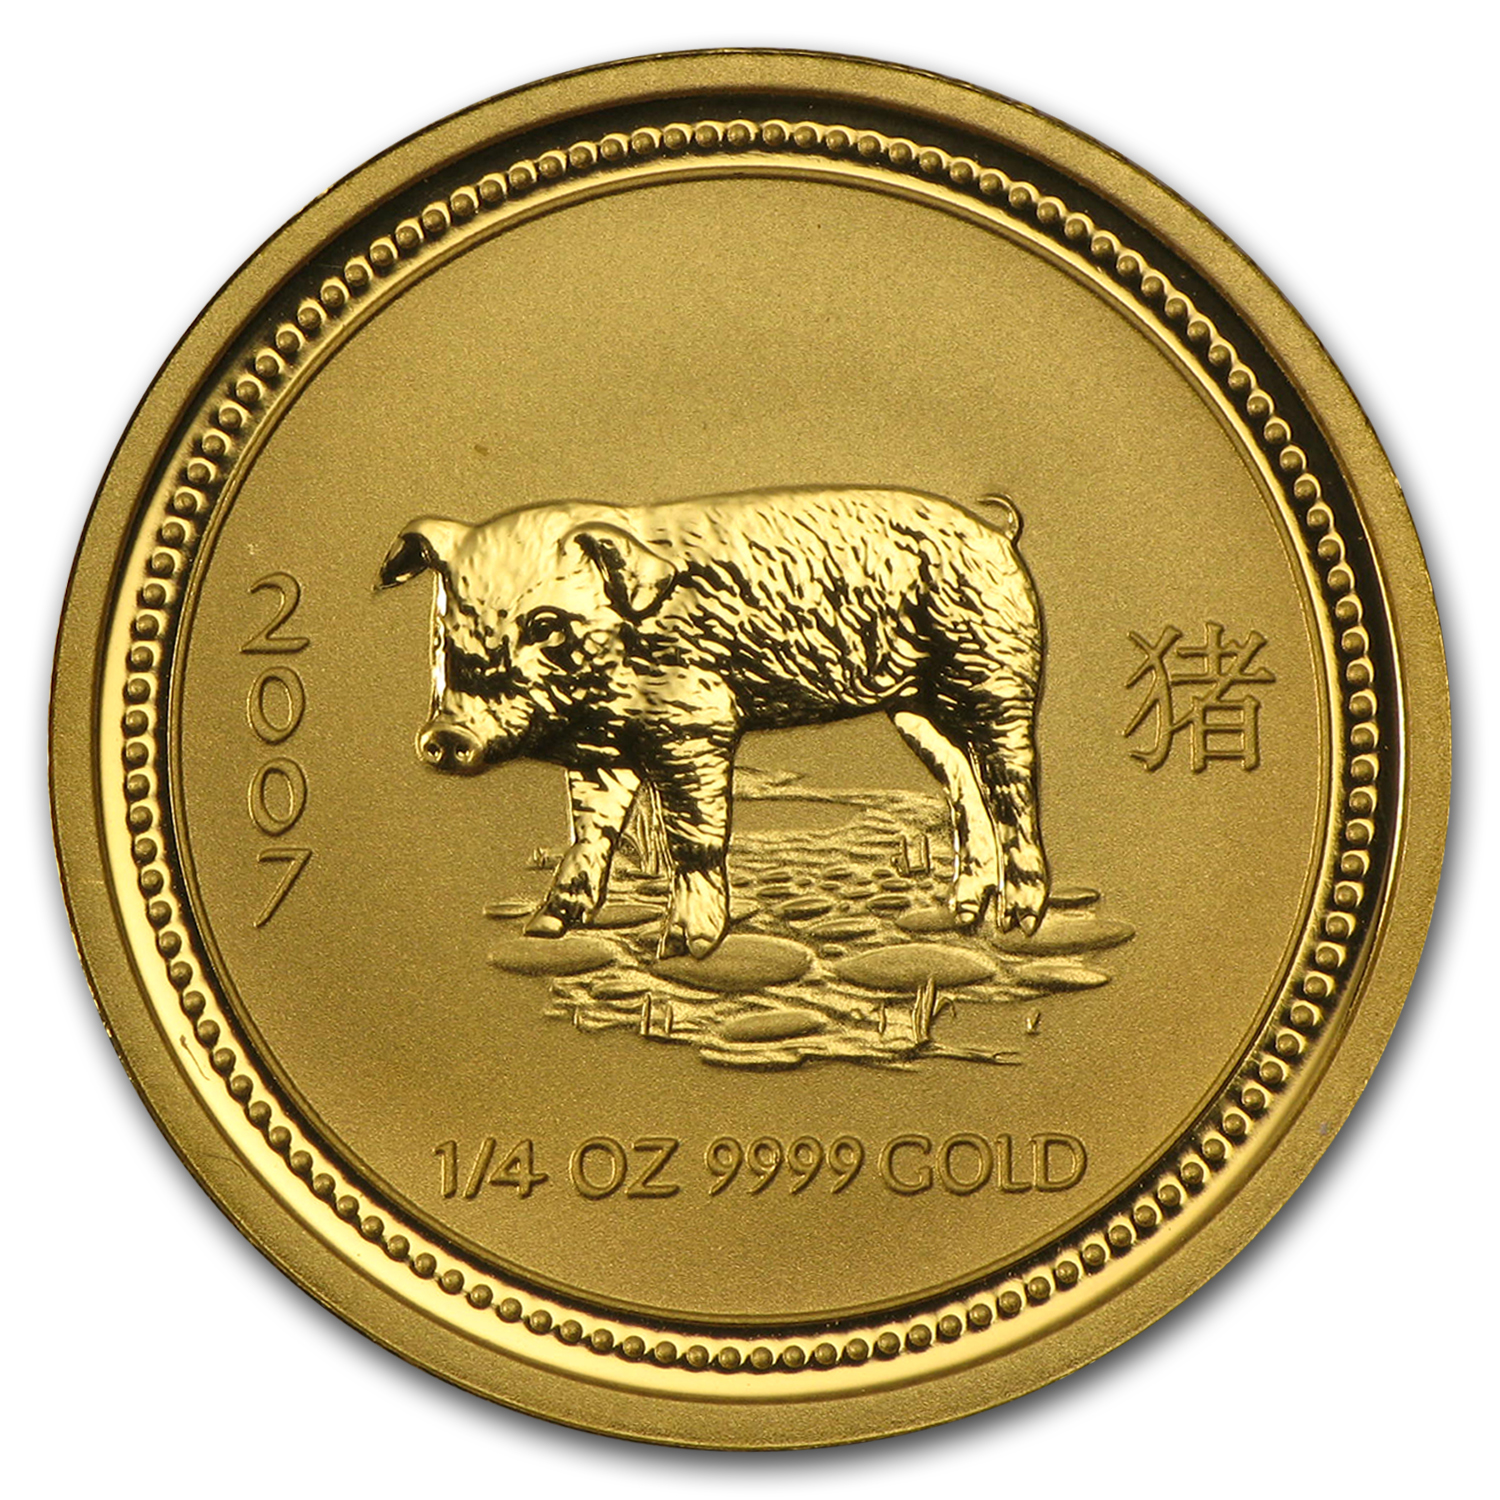 2007 1/4 oz Gold Lunar Year of the Pig BU (Series I)